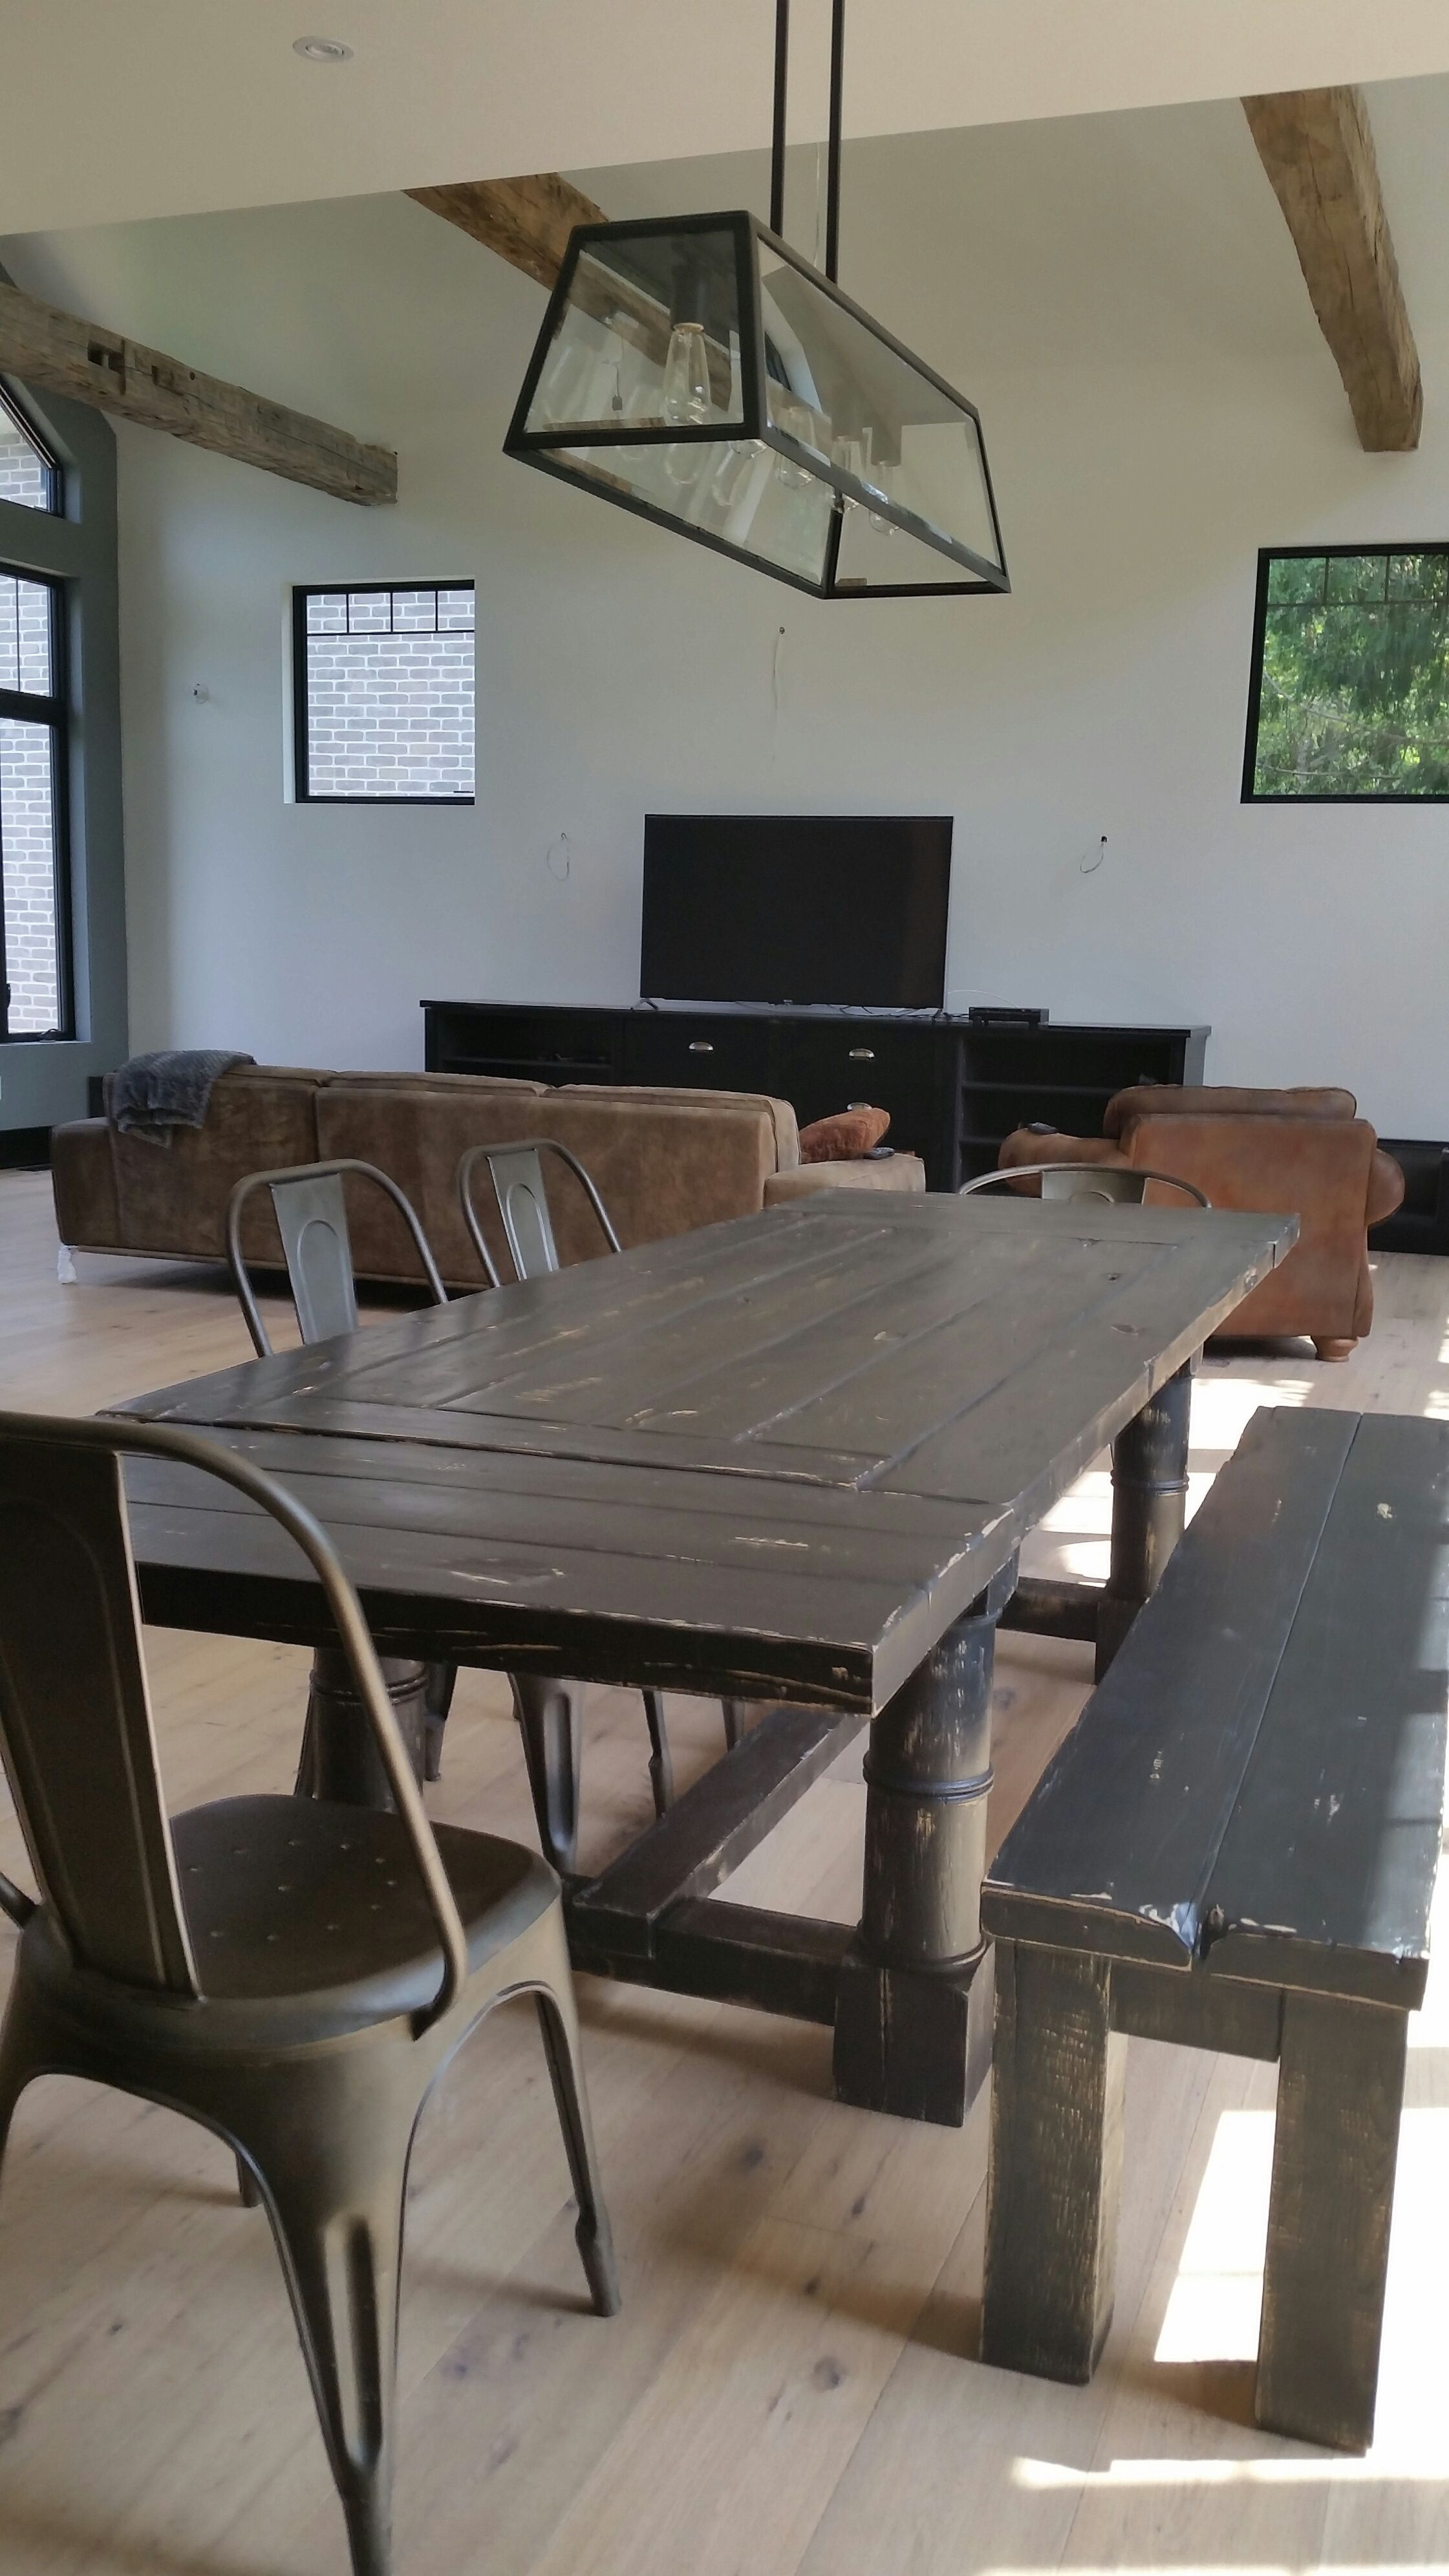 antique black finish 10' long rustic dining table with